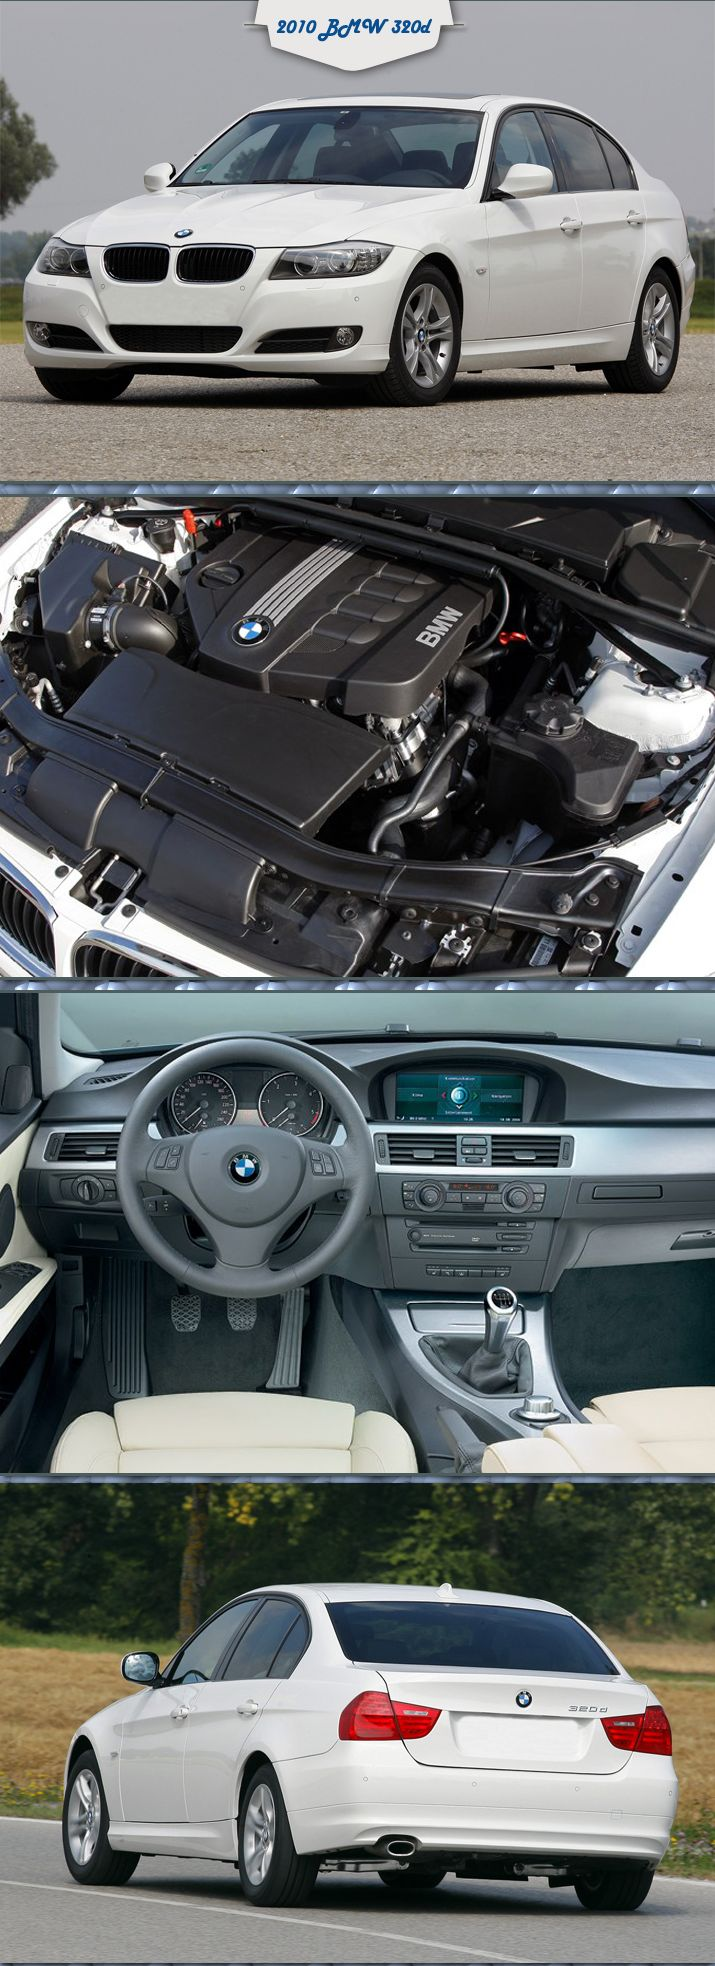 #BMW #320d ED Plus Is Better Than Ever More Details at: http://www.engineprices.co.uk/